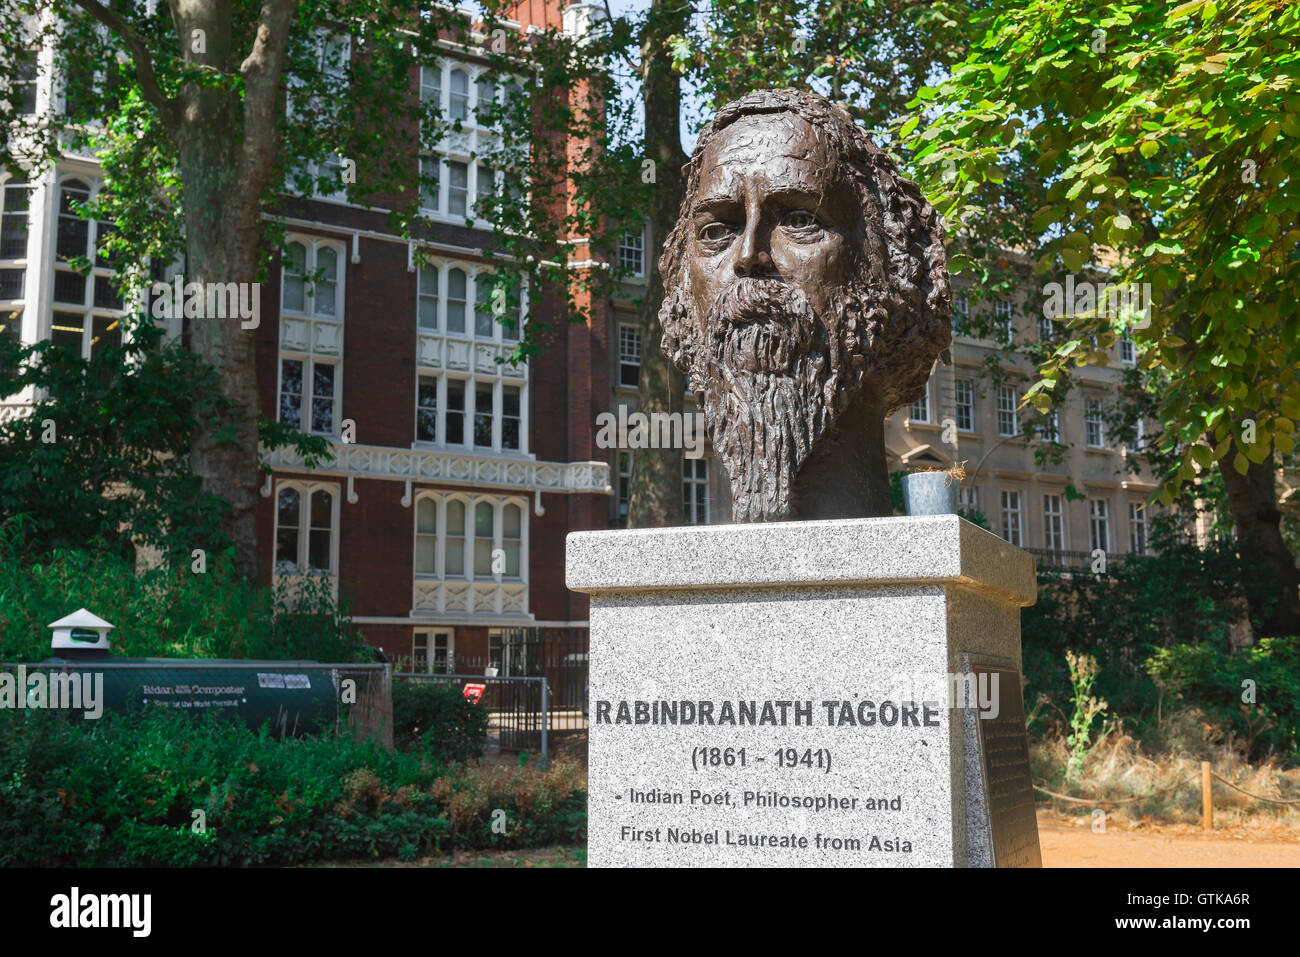 Rabindranath Tagore London, a statue of Indian poet and philosopher Rabindranath Tagore in Gordon Square, Bloomsbury, - Stock Image